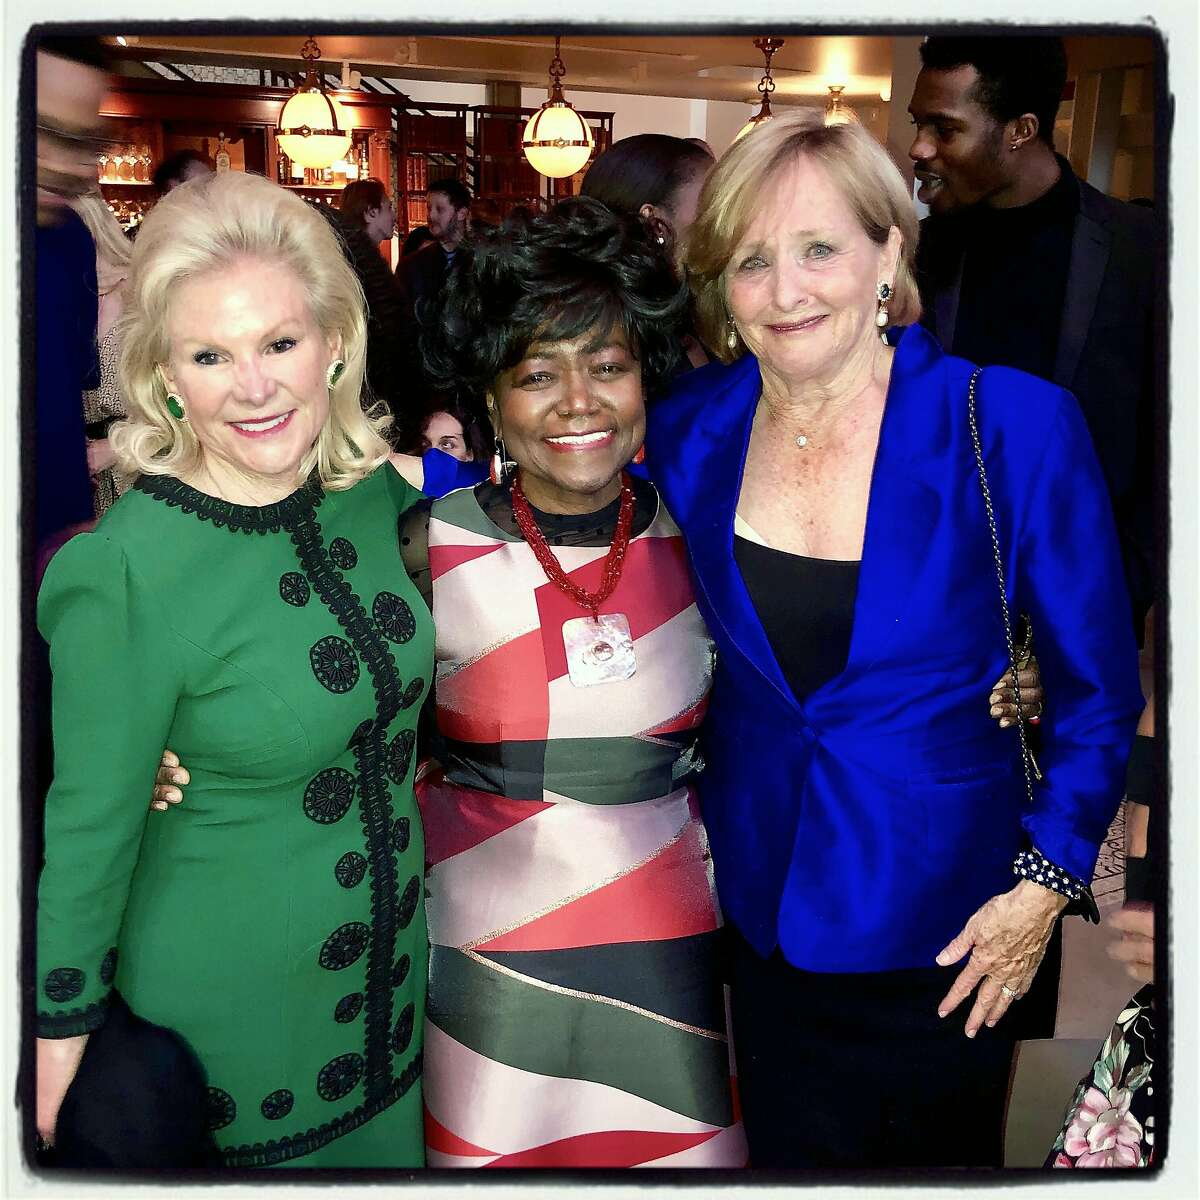 Dede Wilsey (left) with YMCO Director Daisy Newman and Frederica Von Stade at the Museum of Performance and Design fundraiser. May 14, 2019.